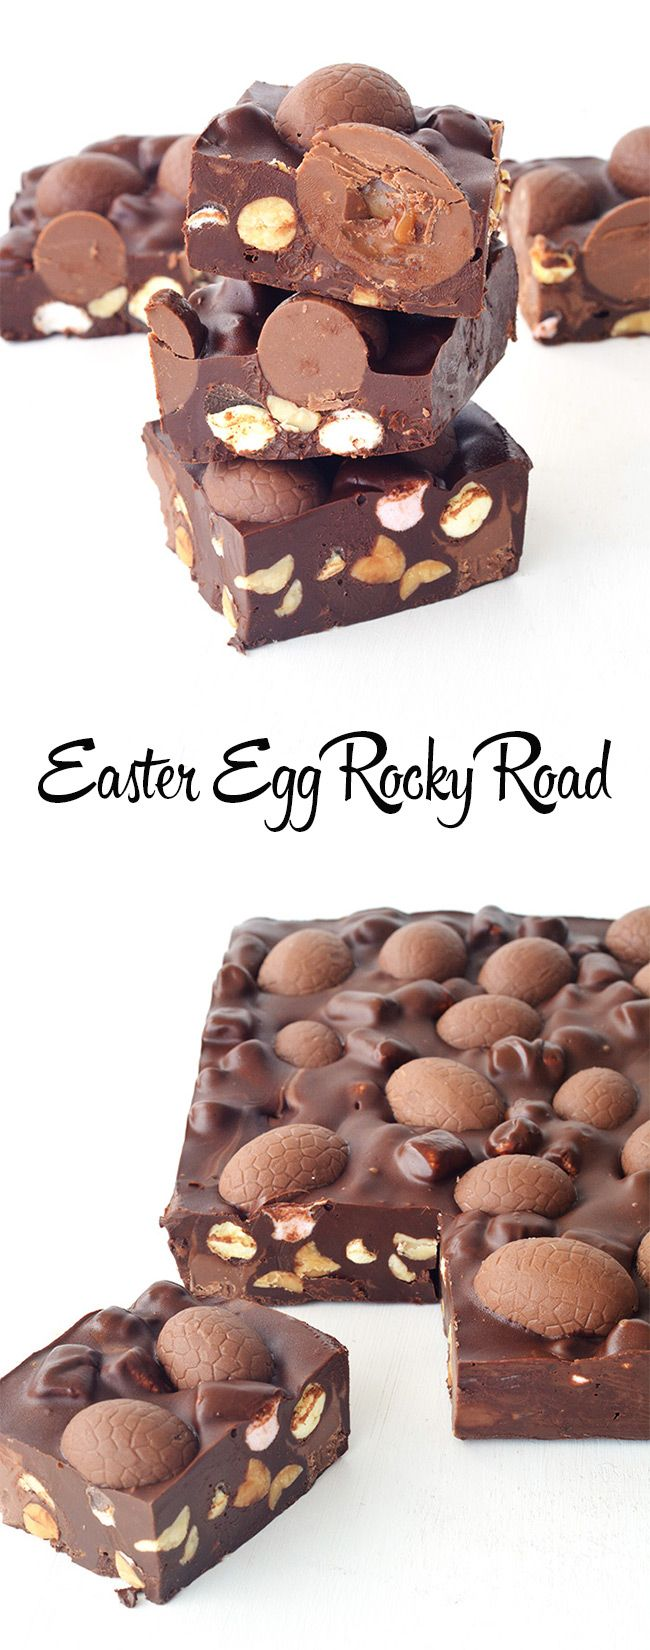 The perfect gift for Easter! Easter Egg Rocky Road with roasted peanuts and mini marshmallows!